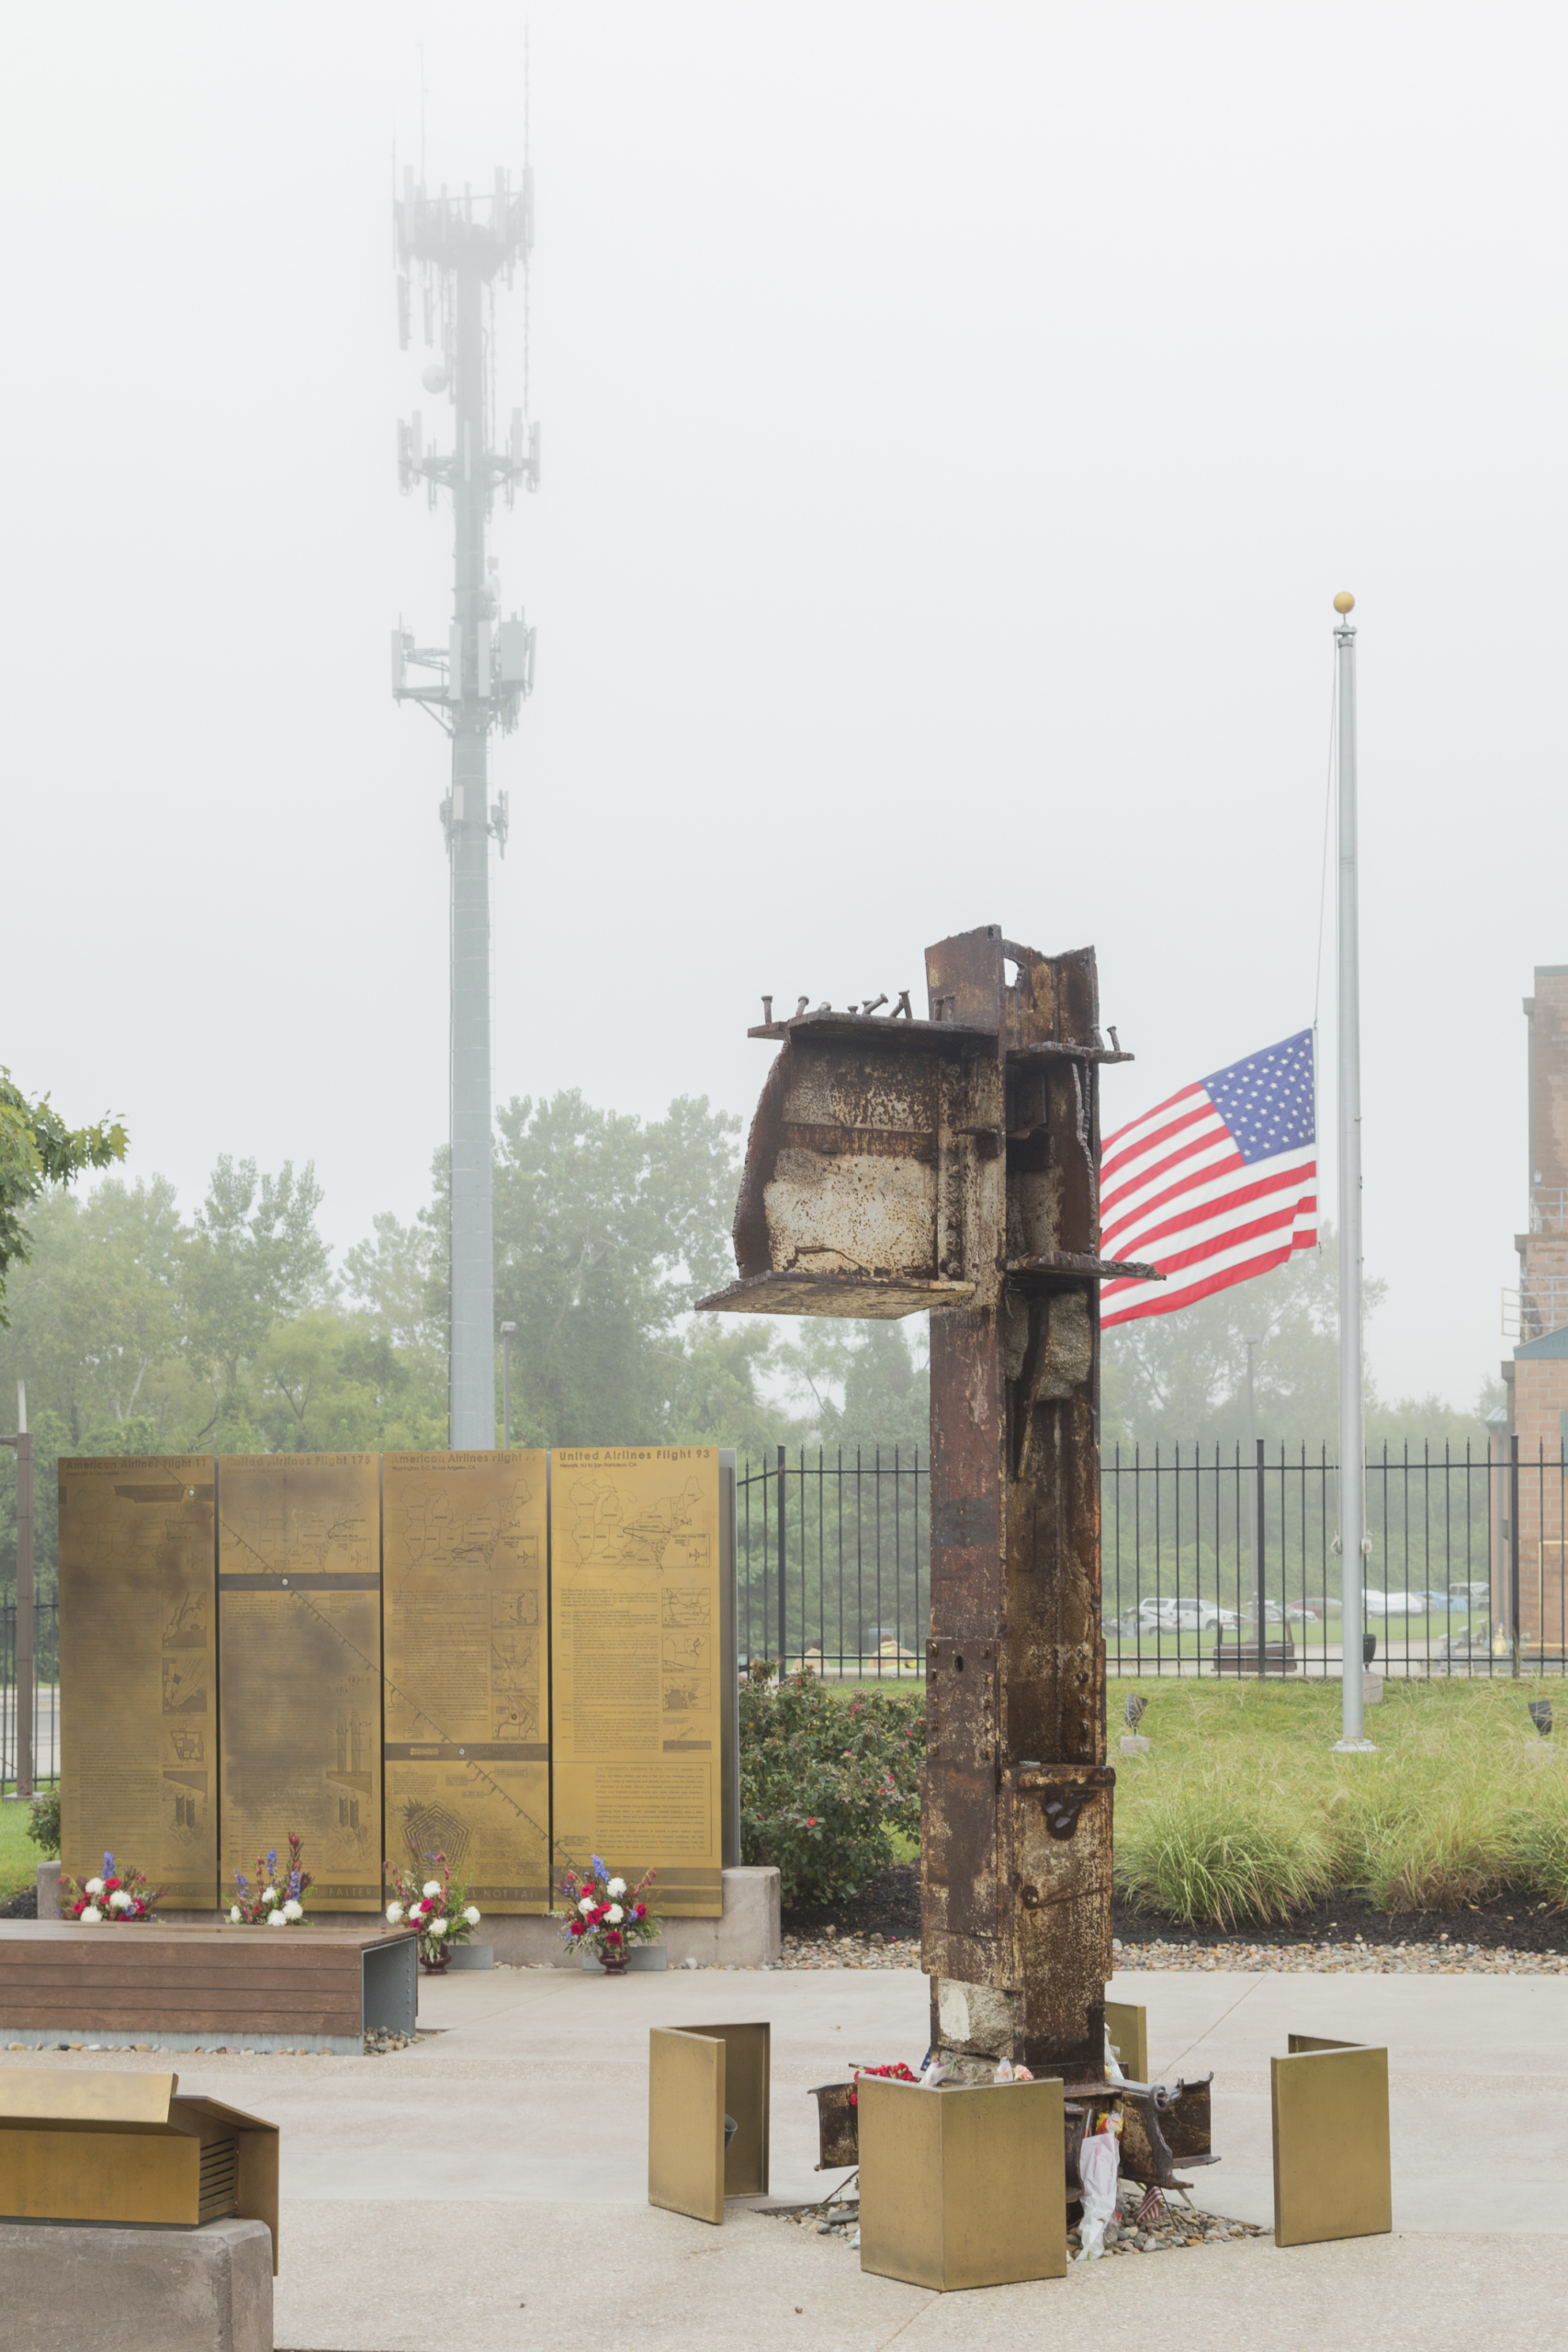 Memorial shows the original I-Beams from the World Trade Center in NYC